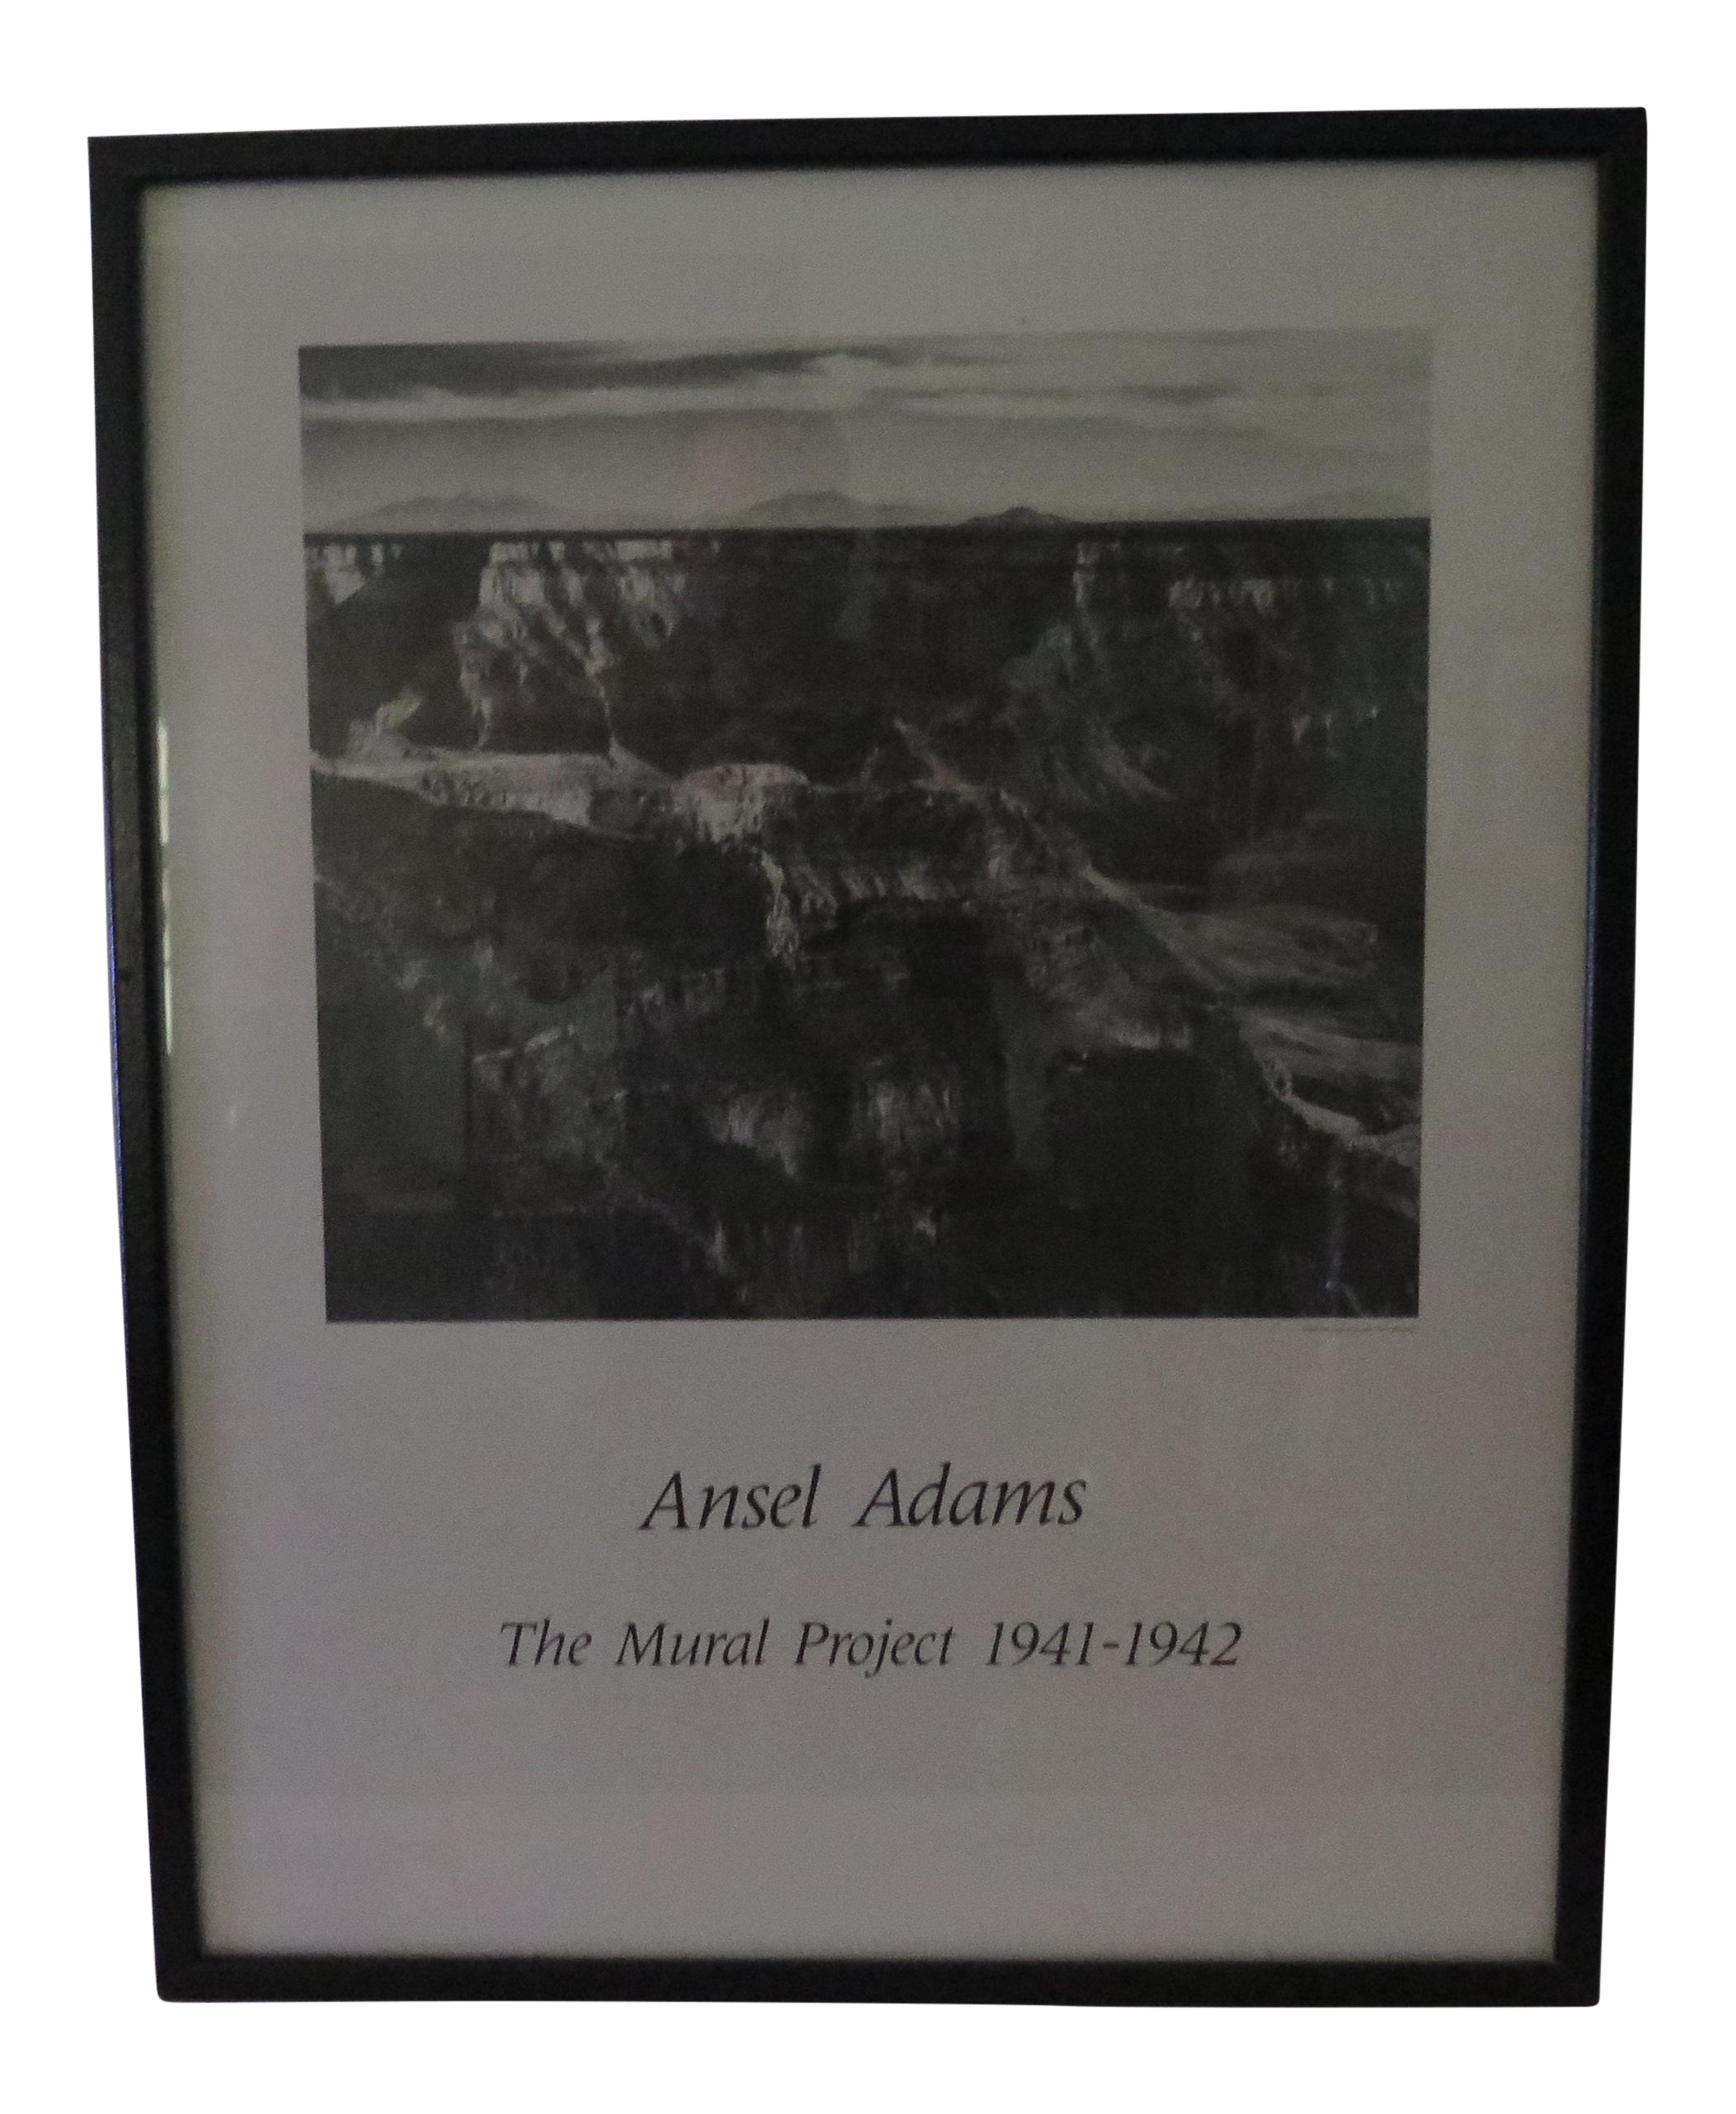 Vintage ansel adams mural project poster chairish for Ansel adams mural project posters